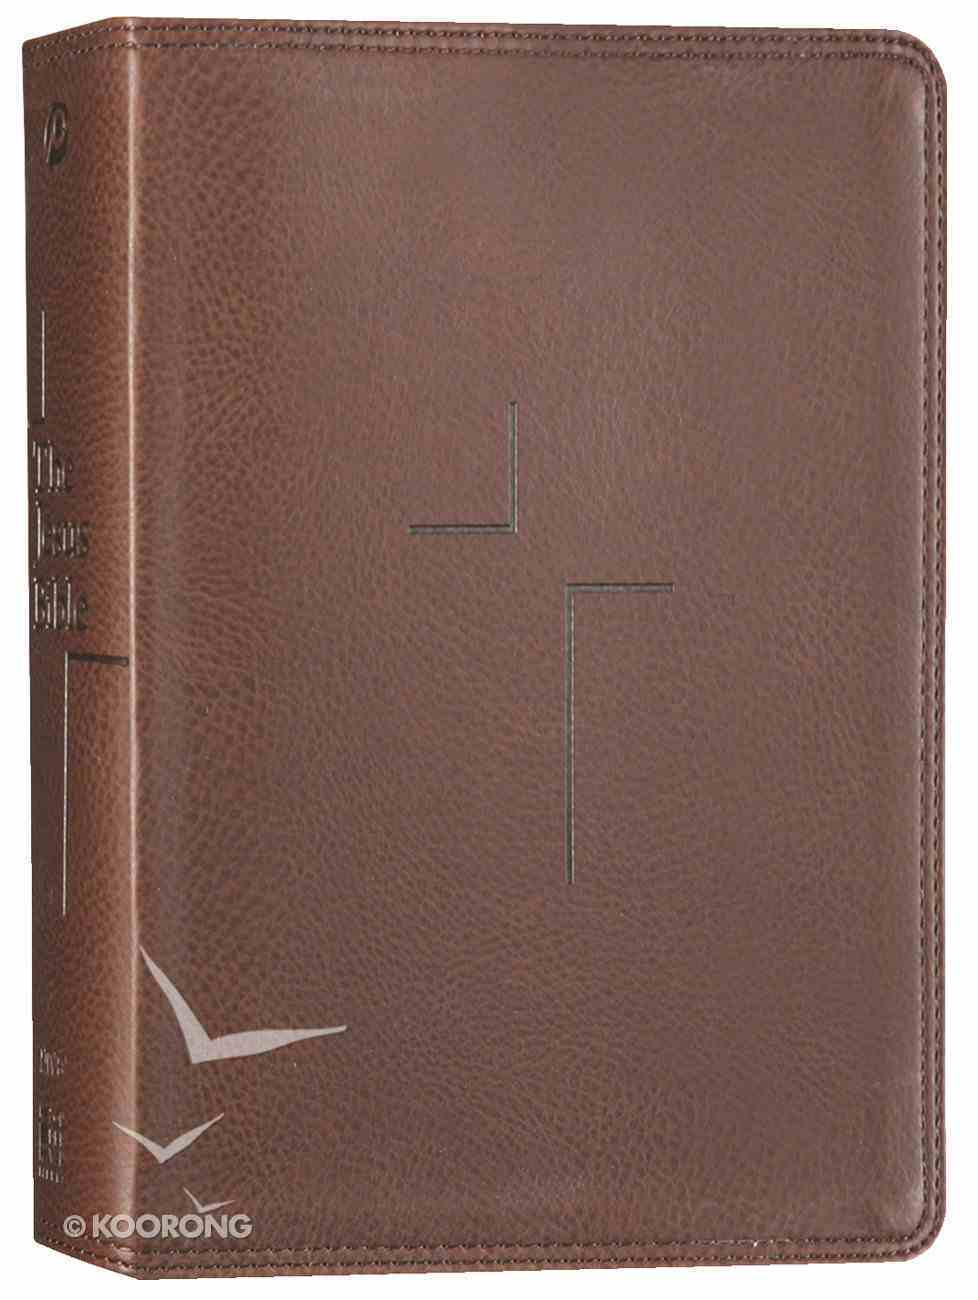 NIV the Jesus Bible Brown Comfort Print Edition (Black Letter Edition) Imitation Leather